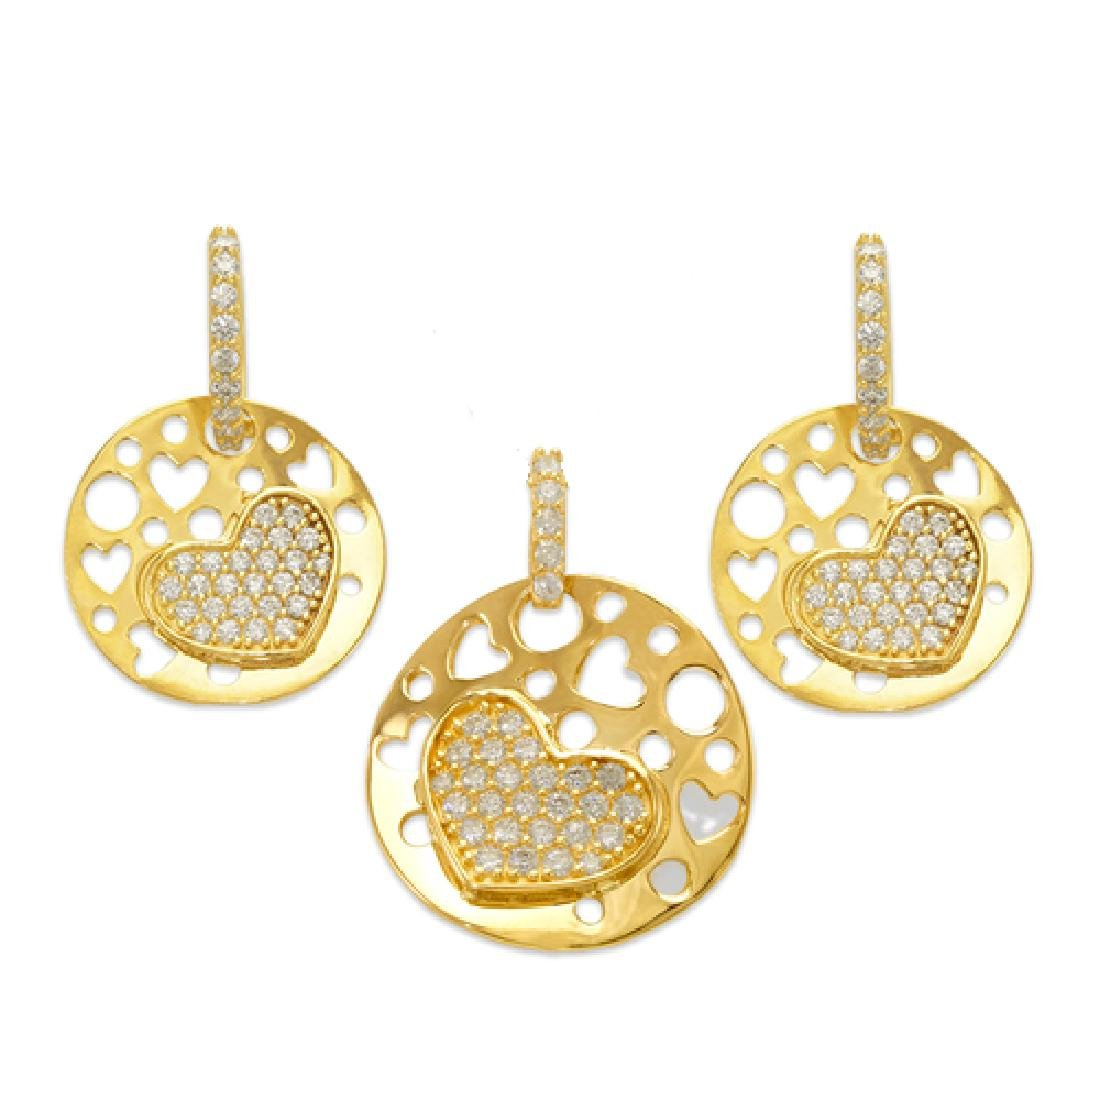 NEW 14K YELLOW GOLD HEART PAVE EARRING PENDANT SET